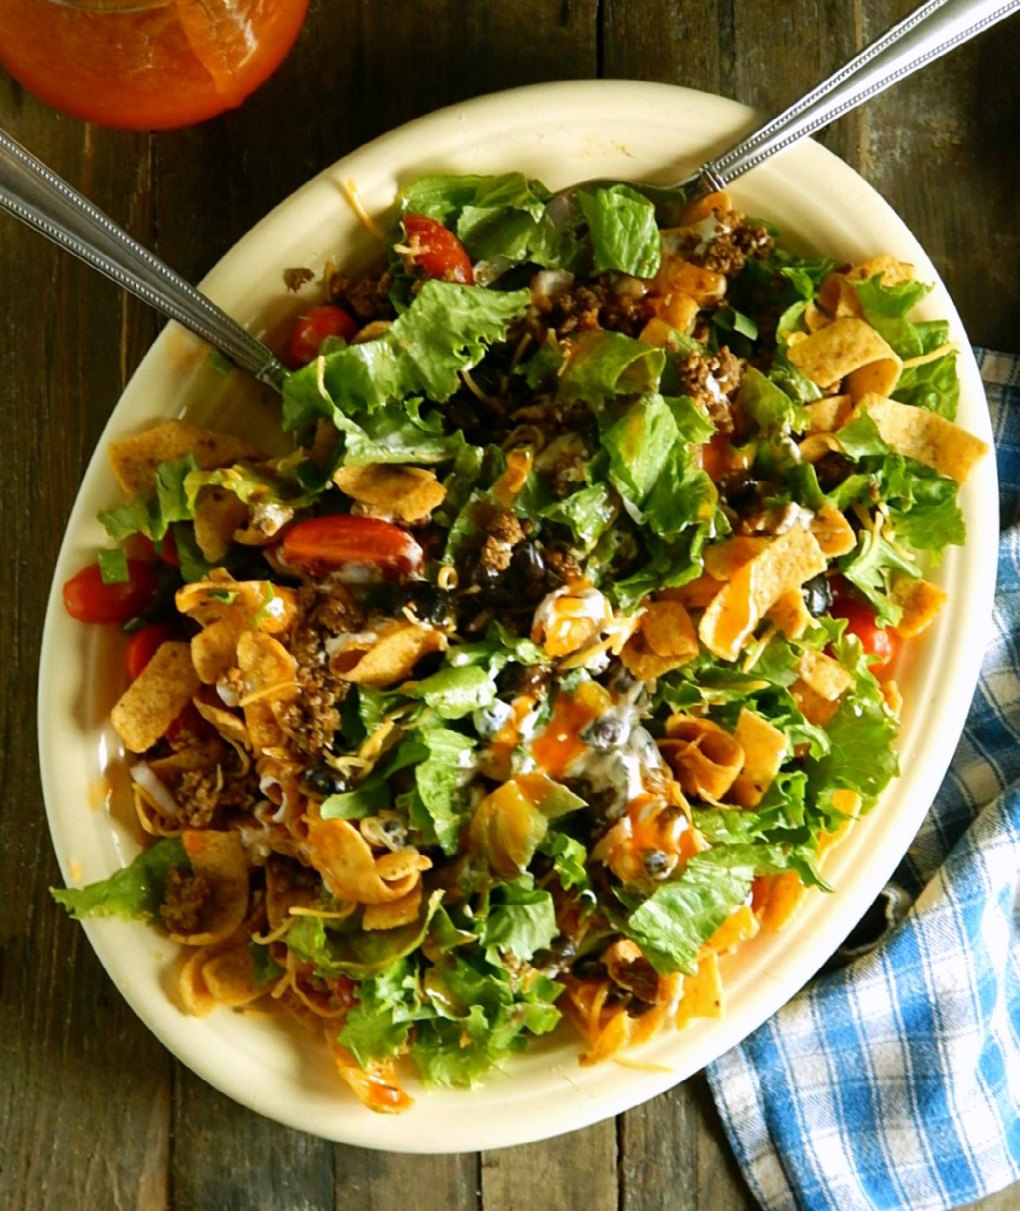 Frito Taco Salad with Home-made Catalina French Dressing